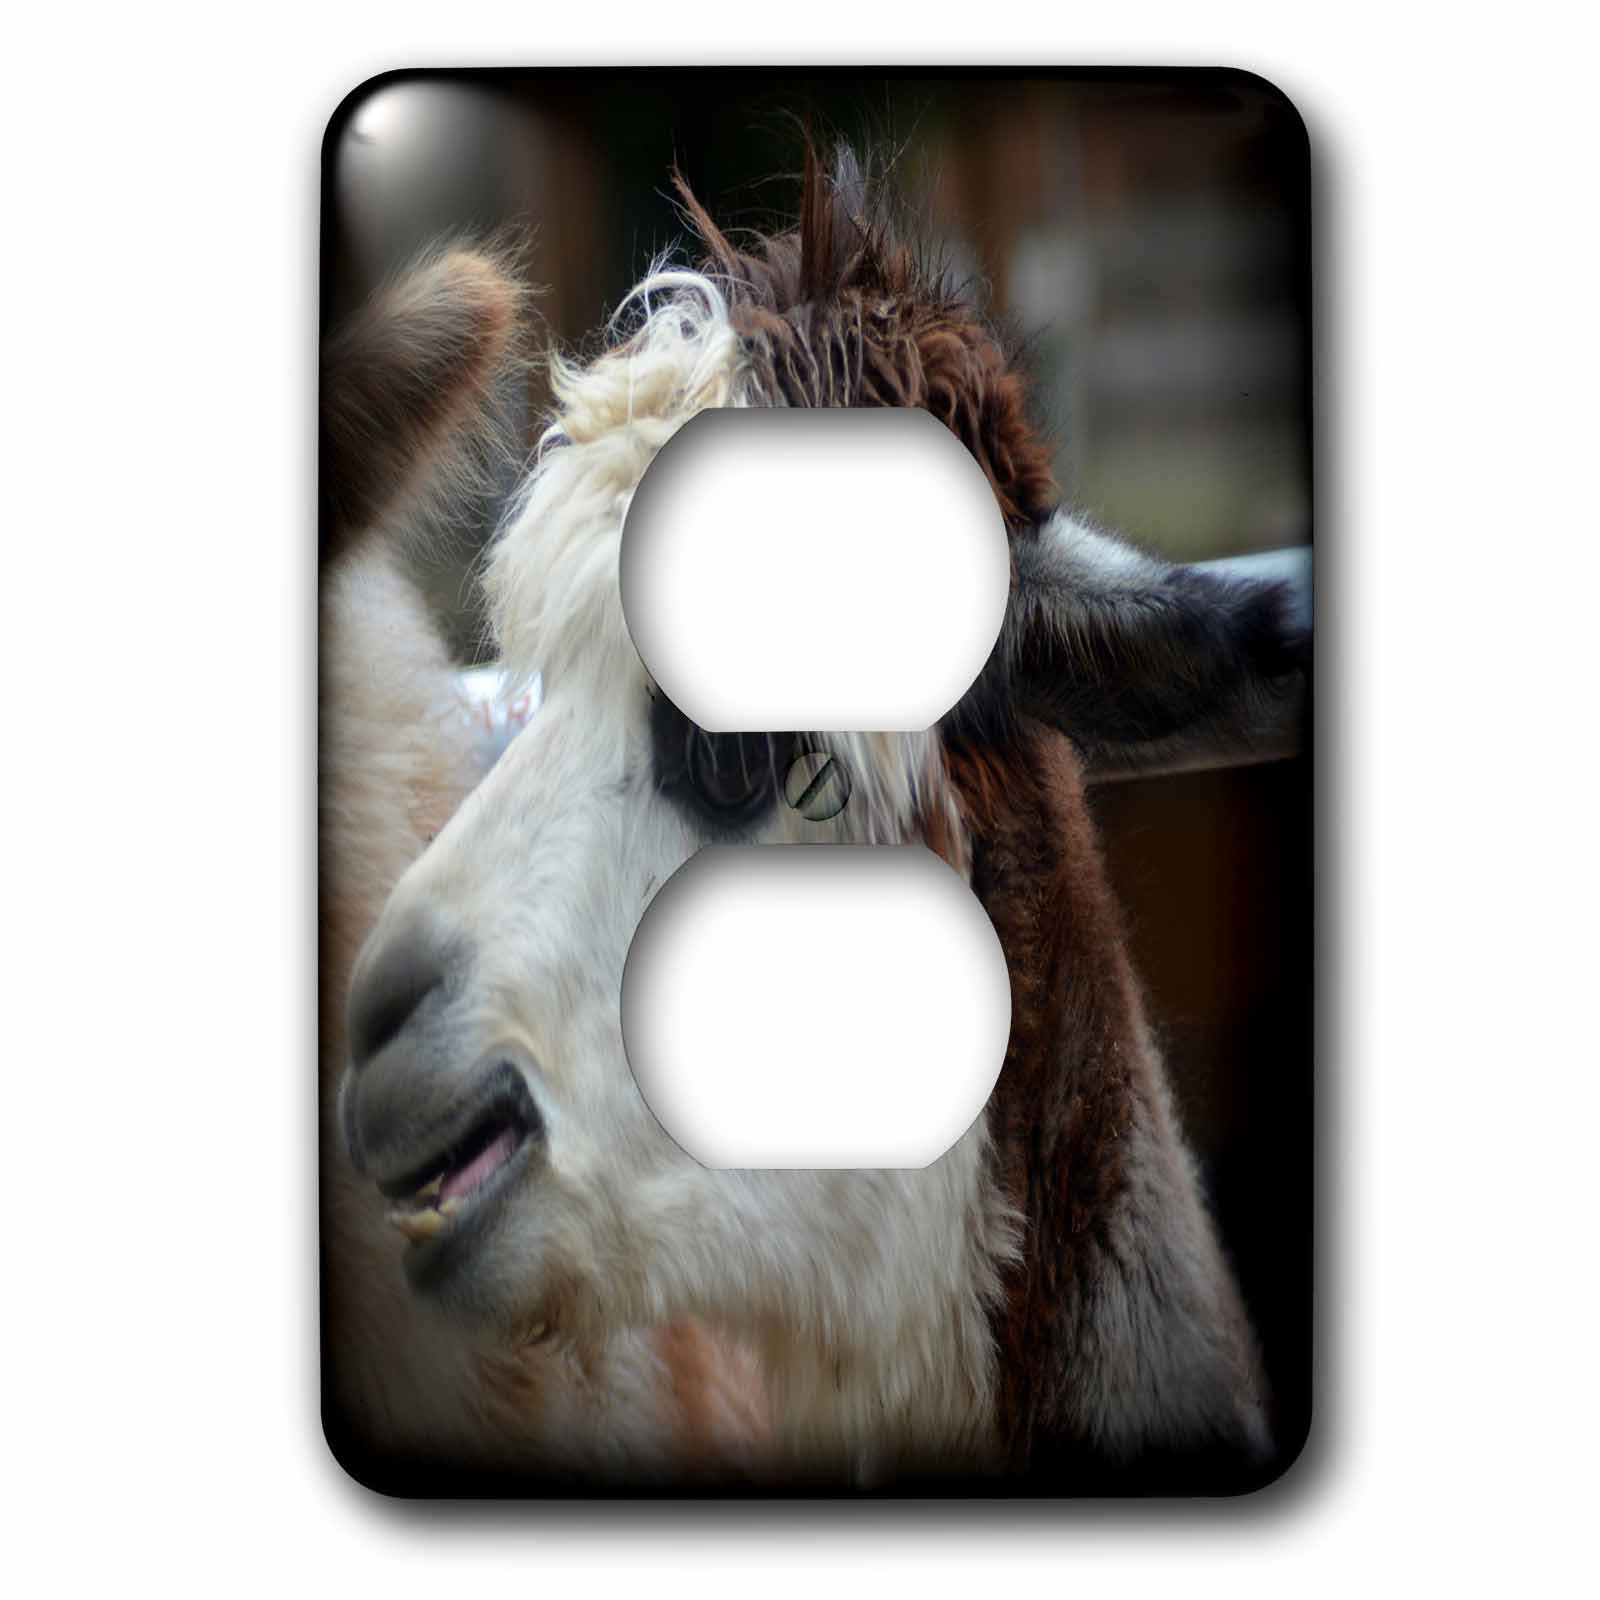 3dRose WhiteOaks Photography and Artwork - Lamas - White Faced Lama is a beautiful lama with a white face - Light Switch Covers - 2 plug outlet cover (lsp_265350_6)